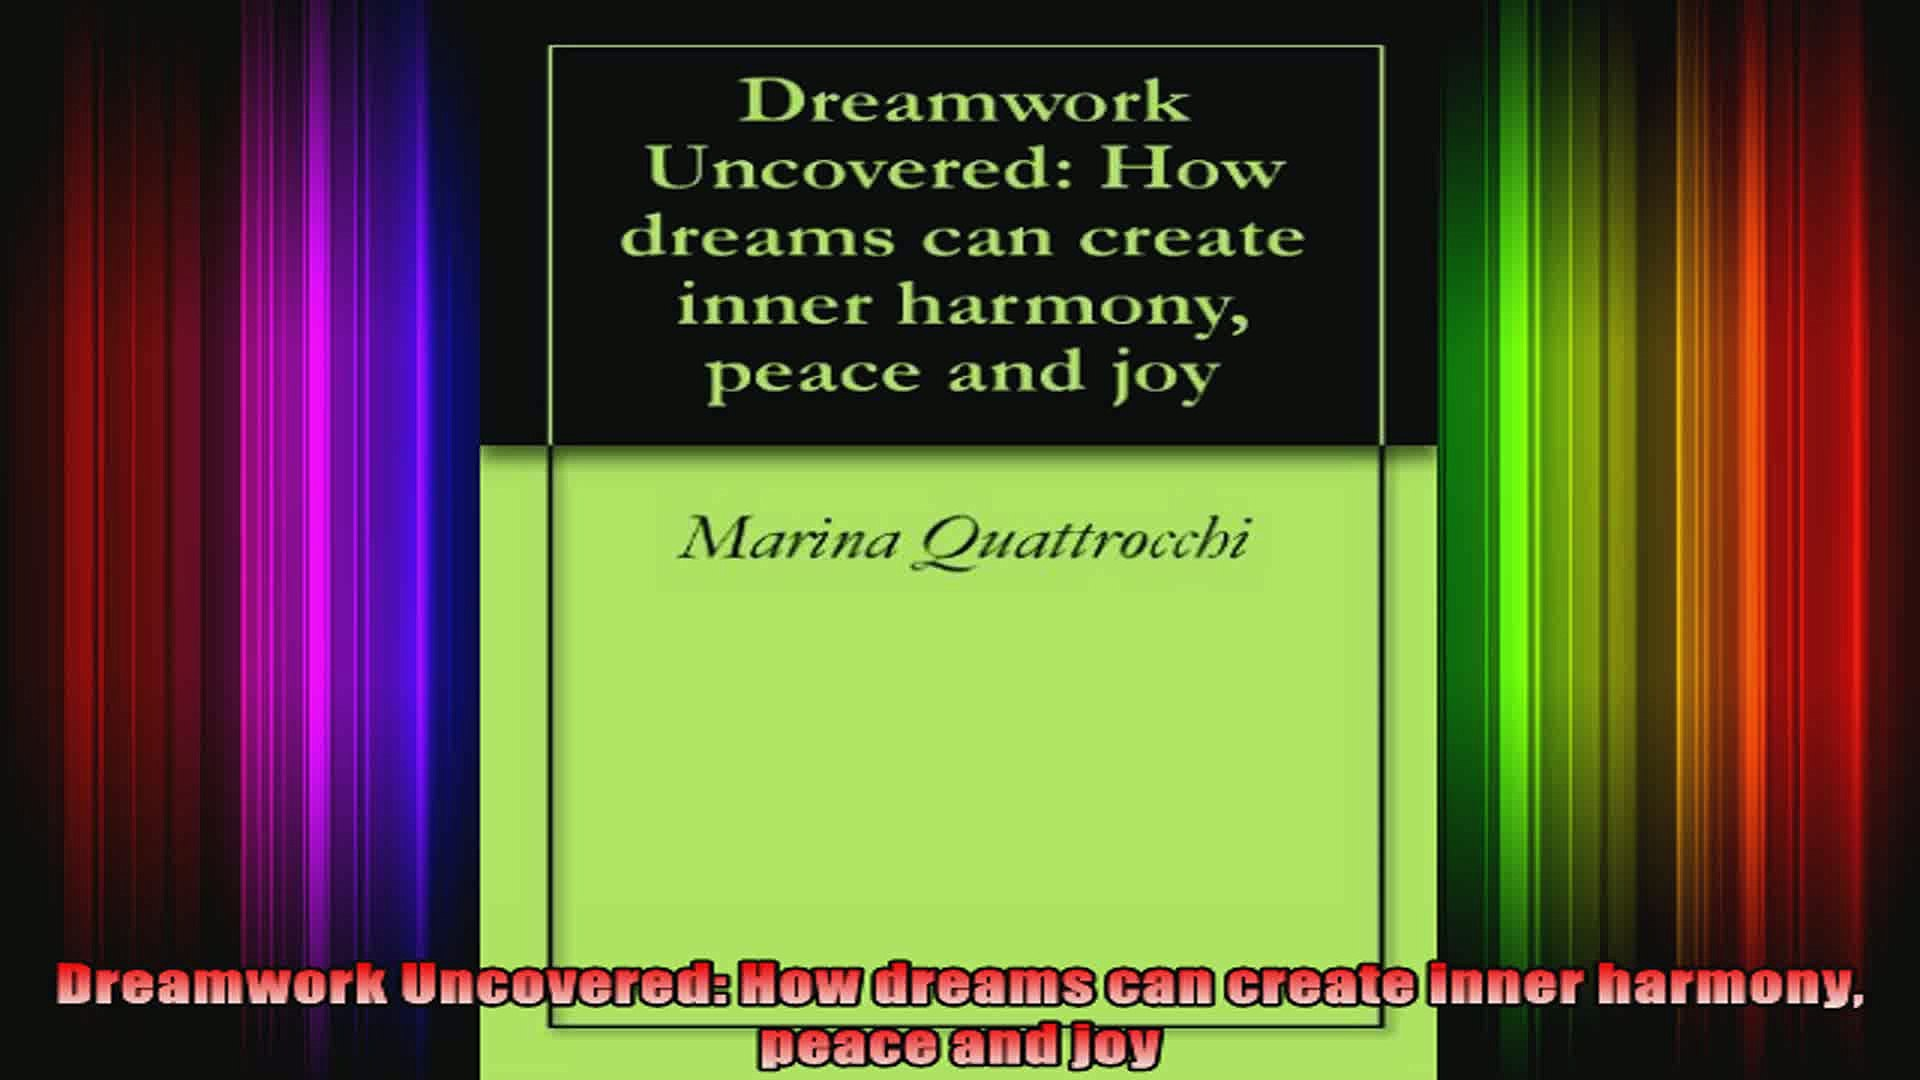 Dreamwork Uncovered